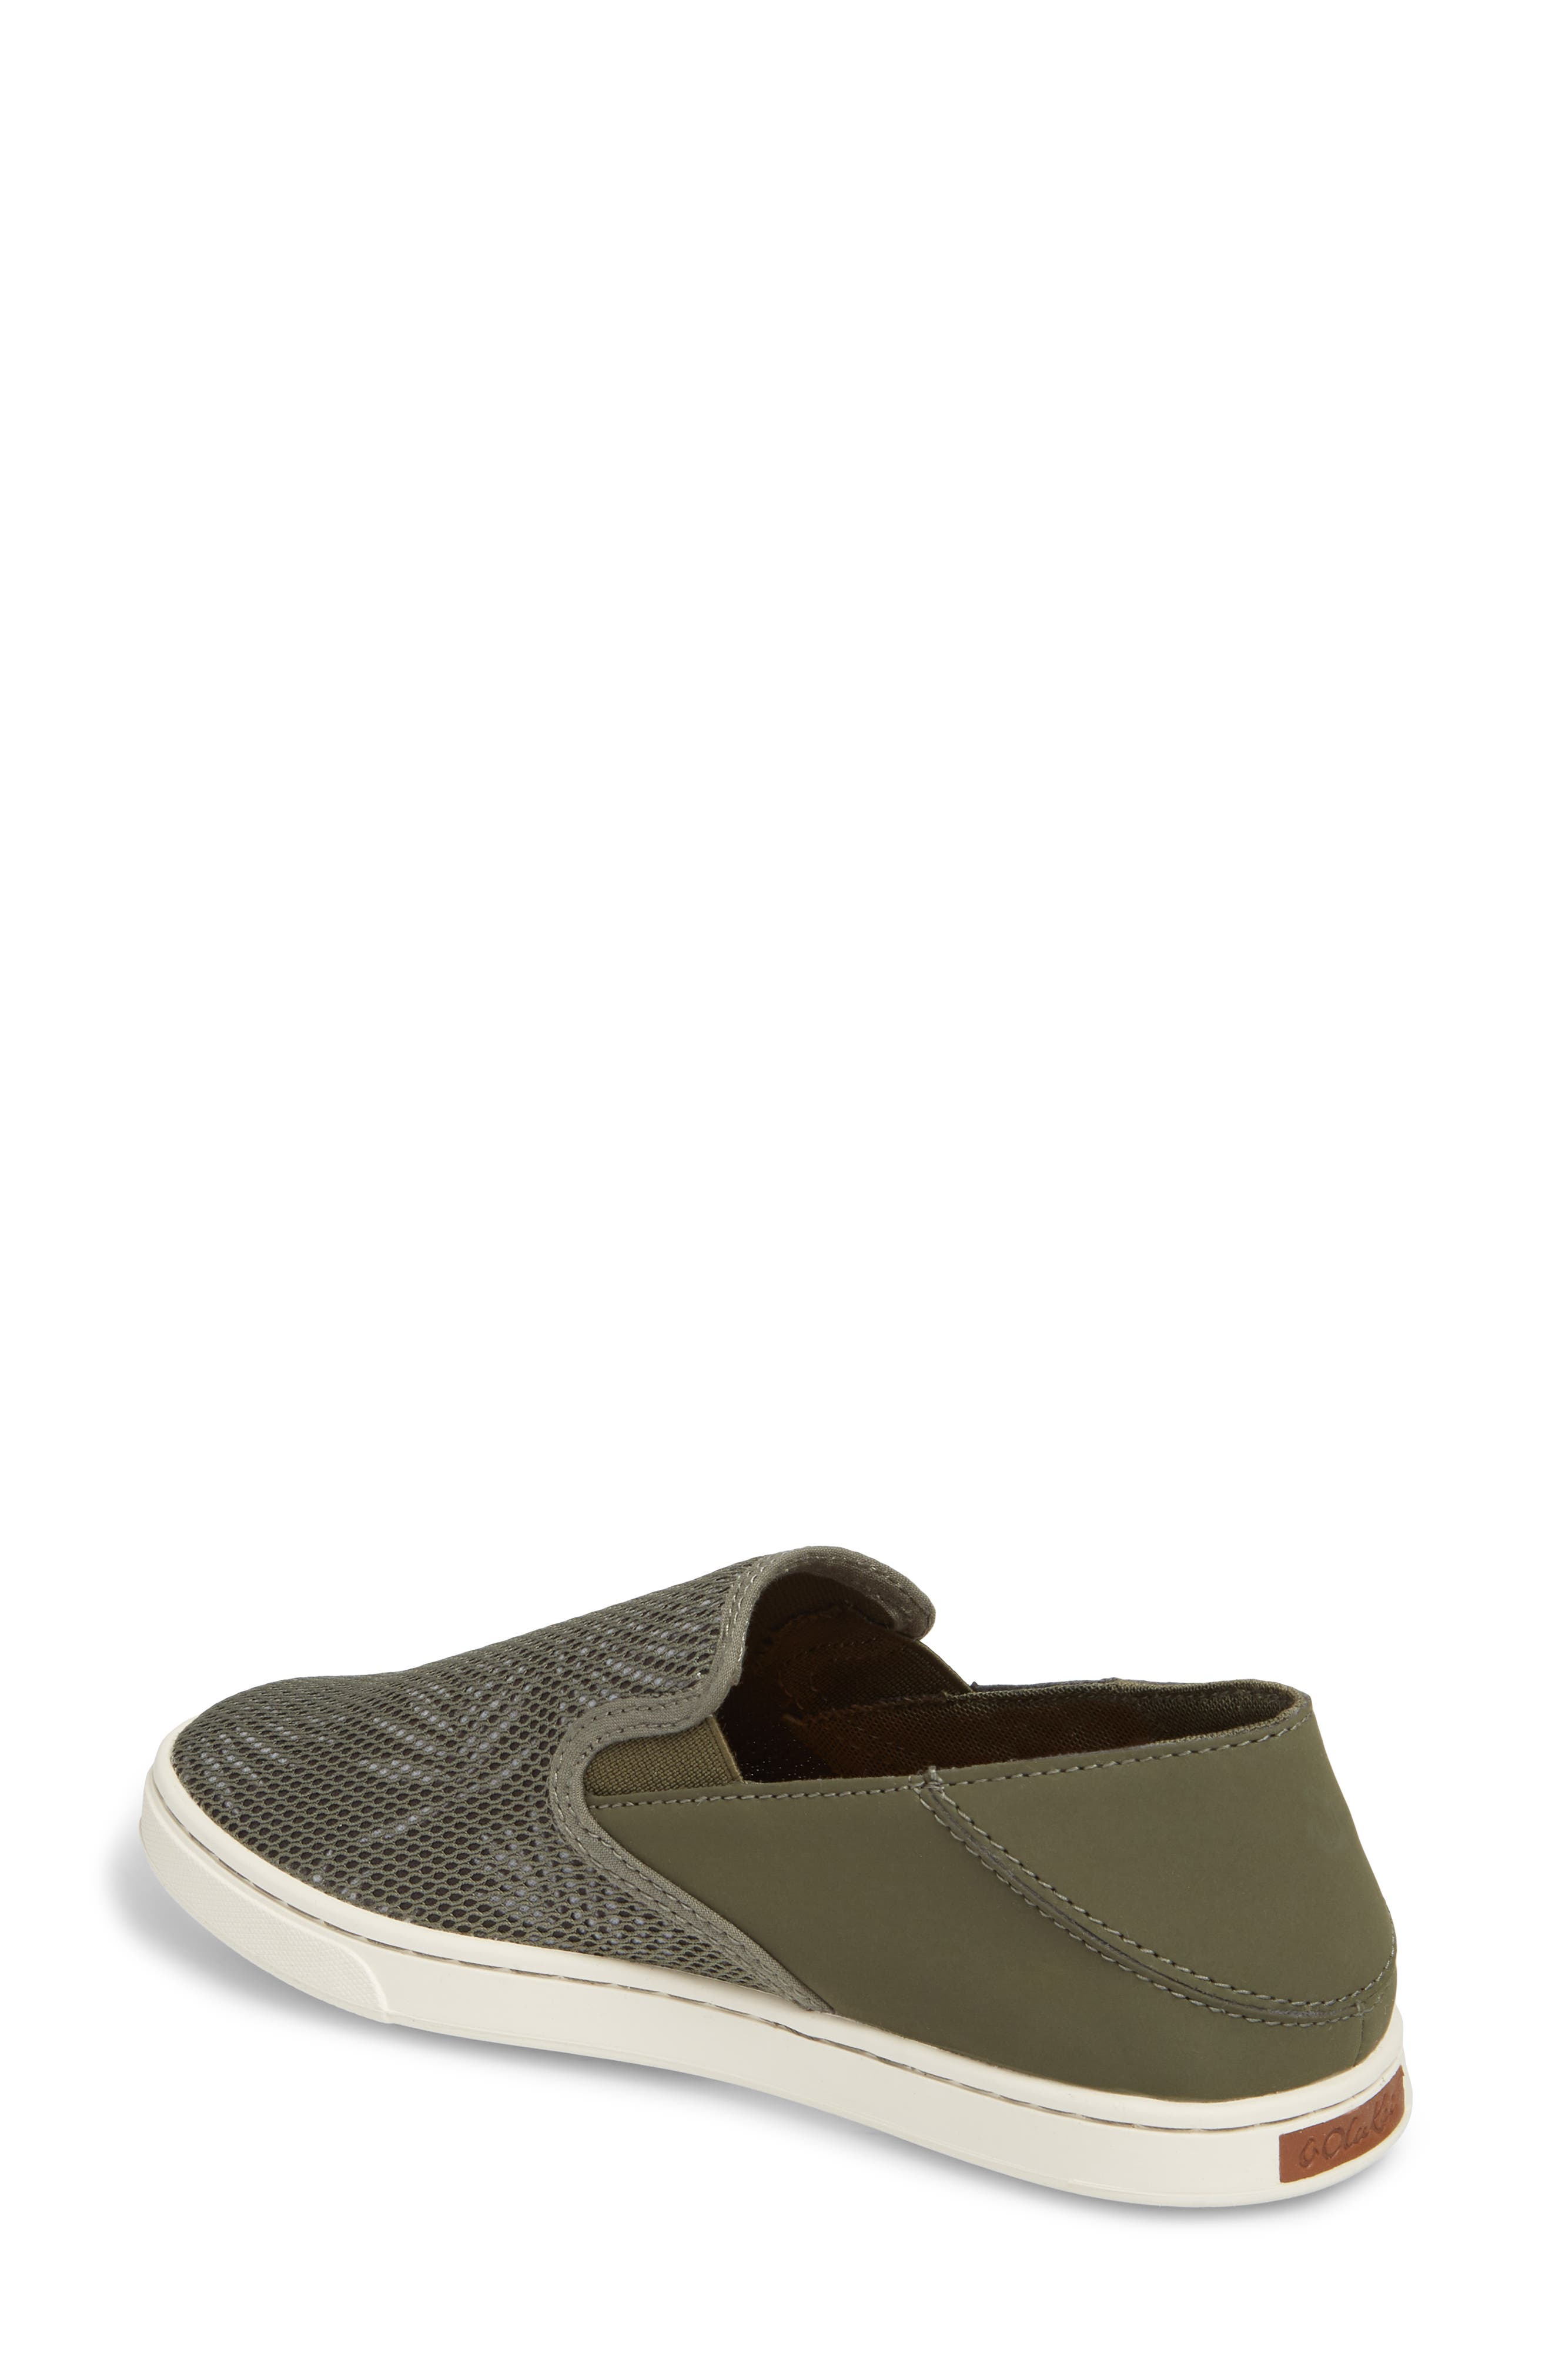 'Pehuea' Slip-On Sneaker,                             Alternate thumbnail 2, color,                             Dusty Olive/ Palm Fabric